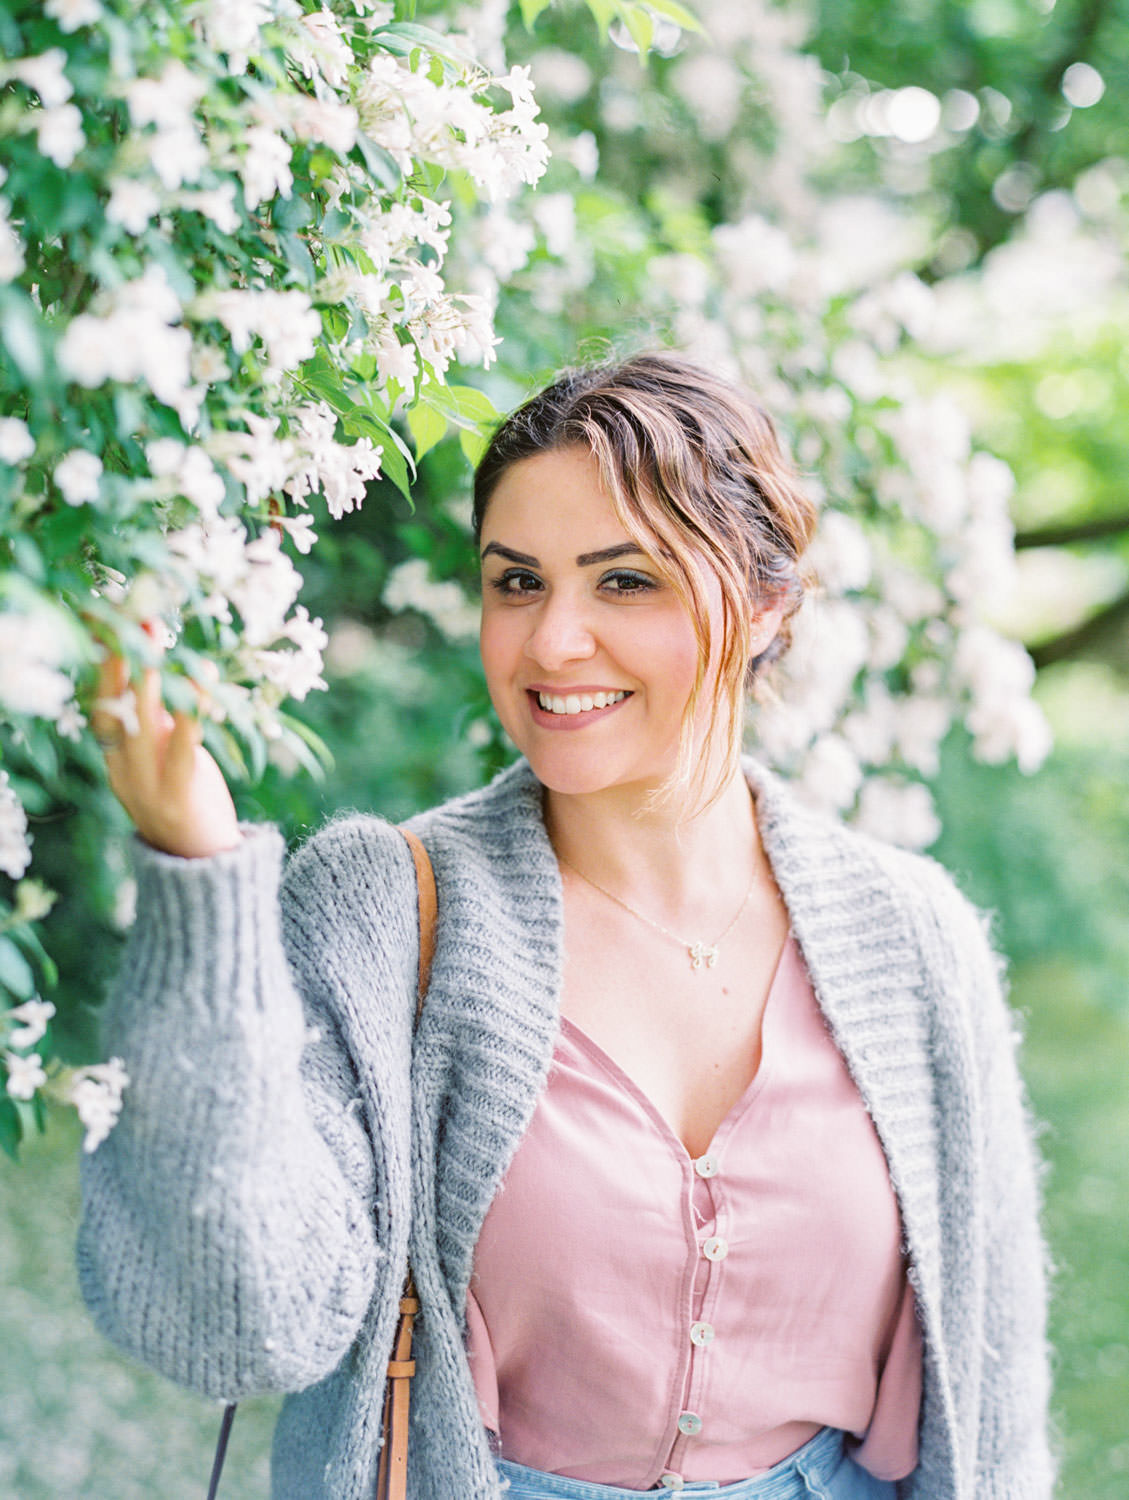 Barnsley House Hotel woman in grey sweater and pink shirt in a flower bush. Flutter Magazine Retreat in the Cotswolds, England. Photo by Cavin Elizabeth Photography on film